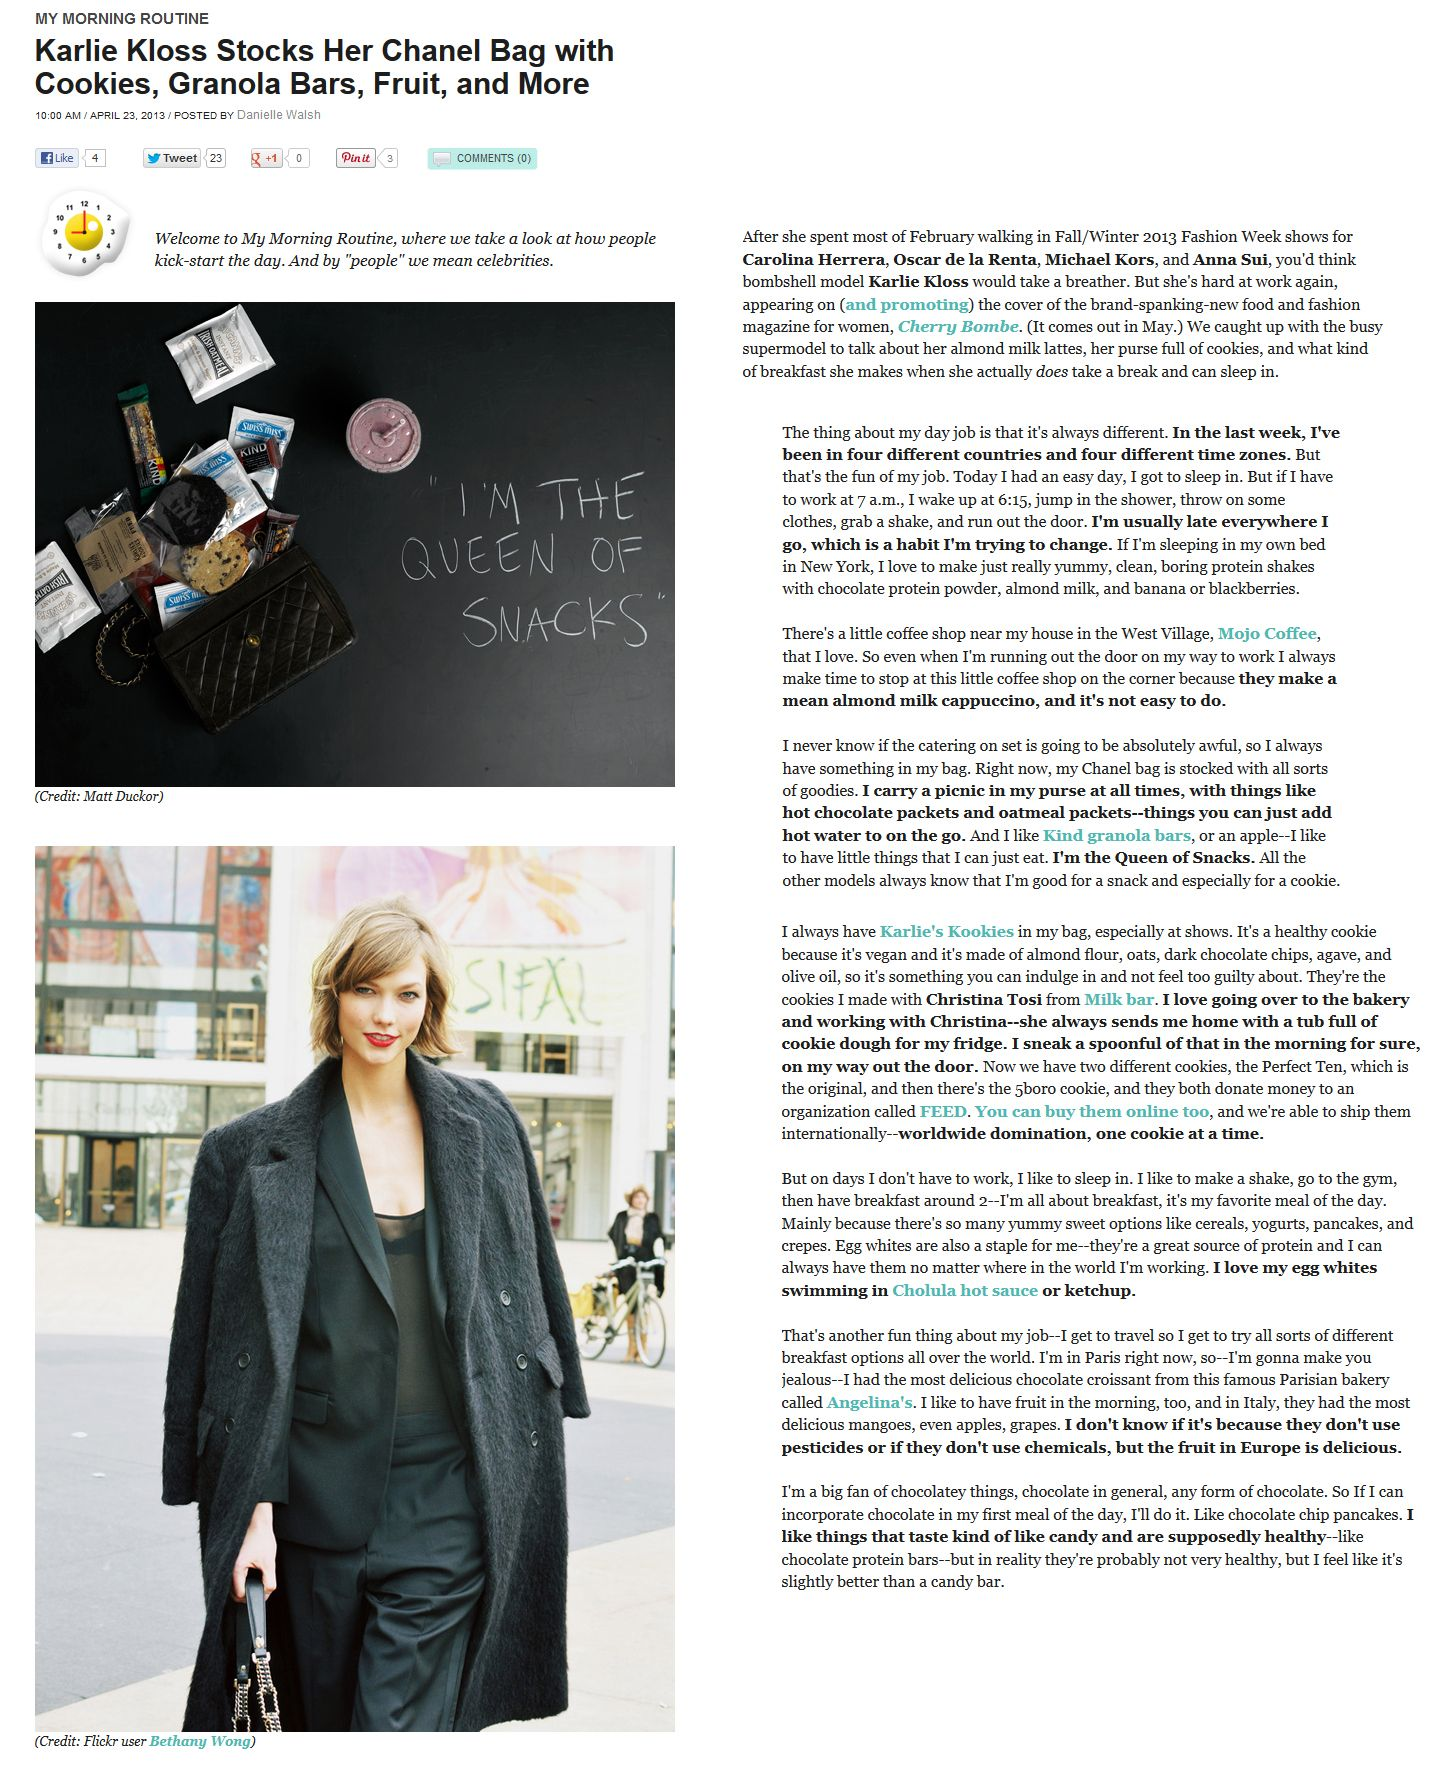 """#KarlieKloss talks to @BonApitit about her """"Life In the Fast Lane"""", morning routine, & favorite #healthy breakfast meal. #Model #Supermodel #VSAngel #Vogue"""